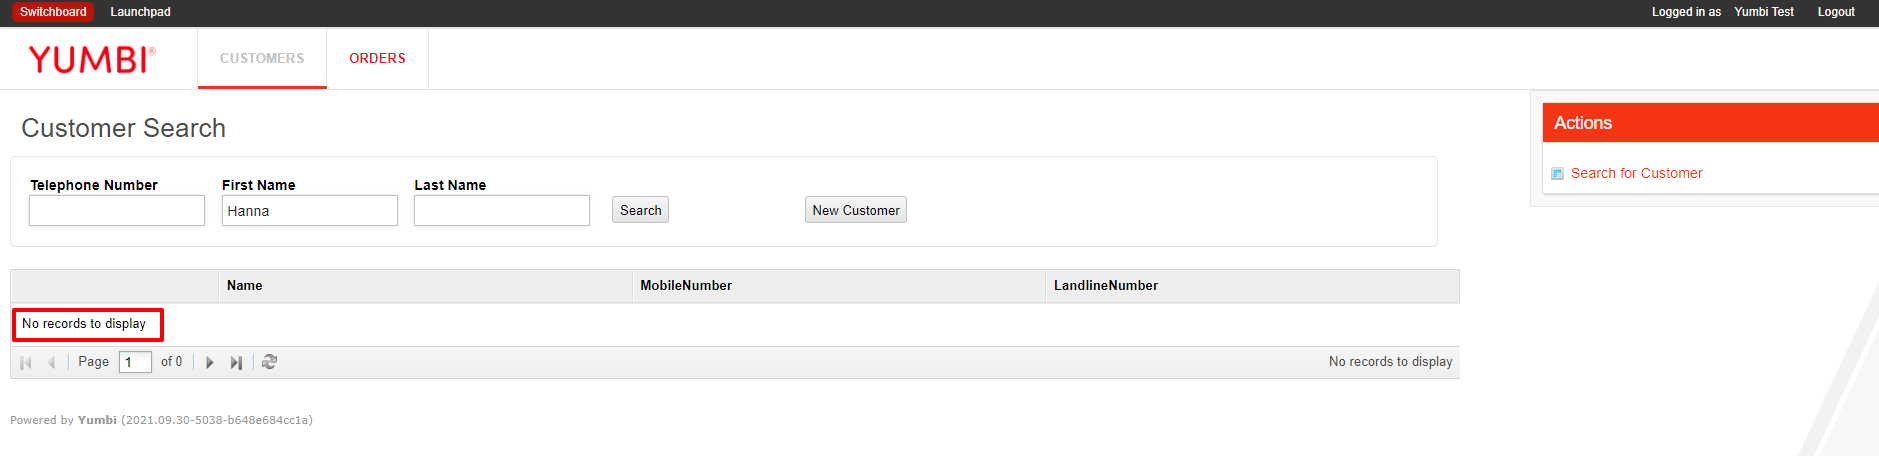 Customer Results Page with No Match.png